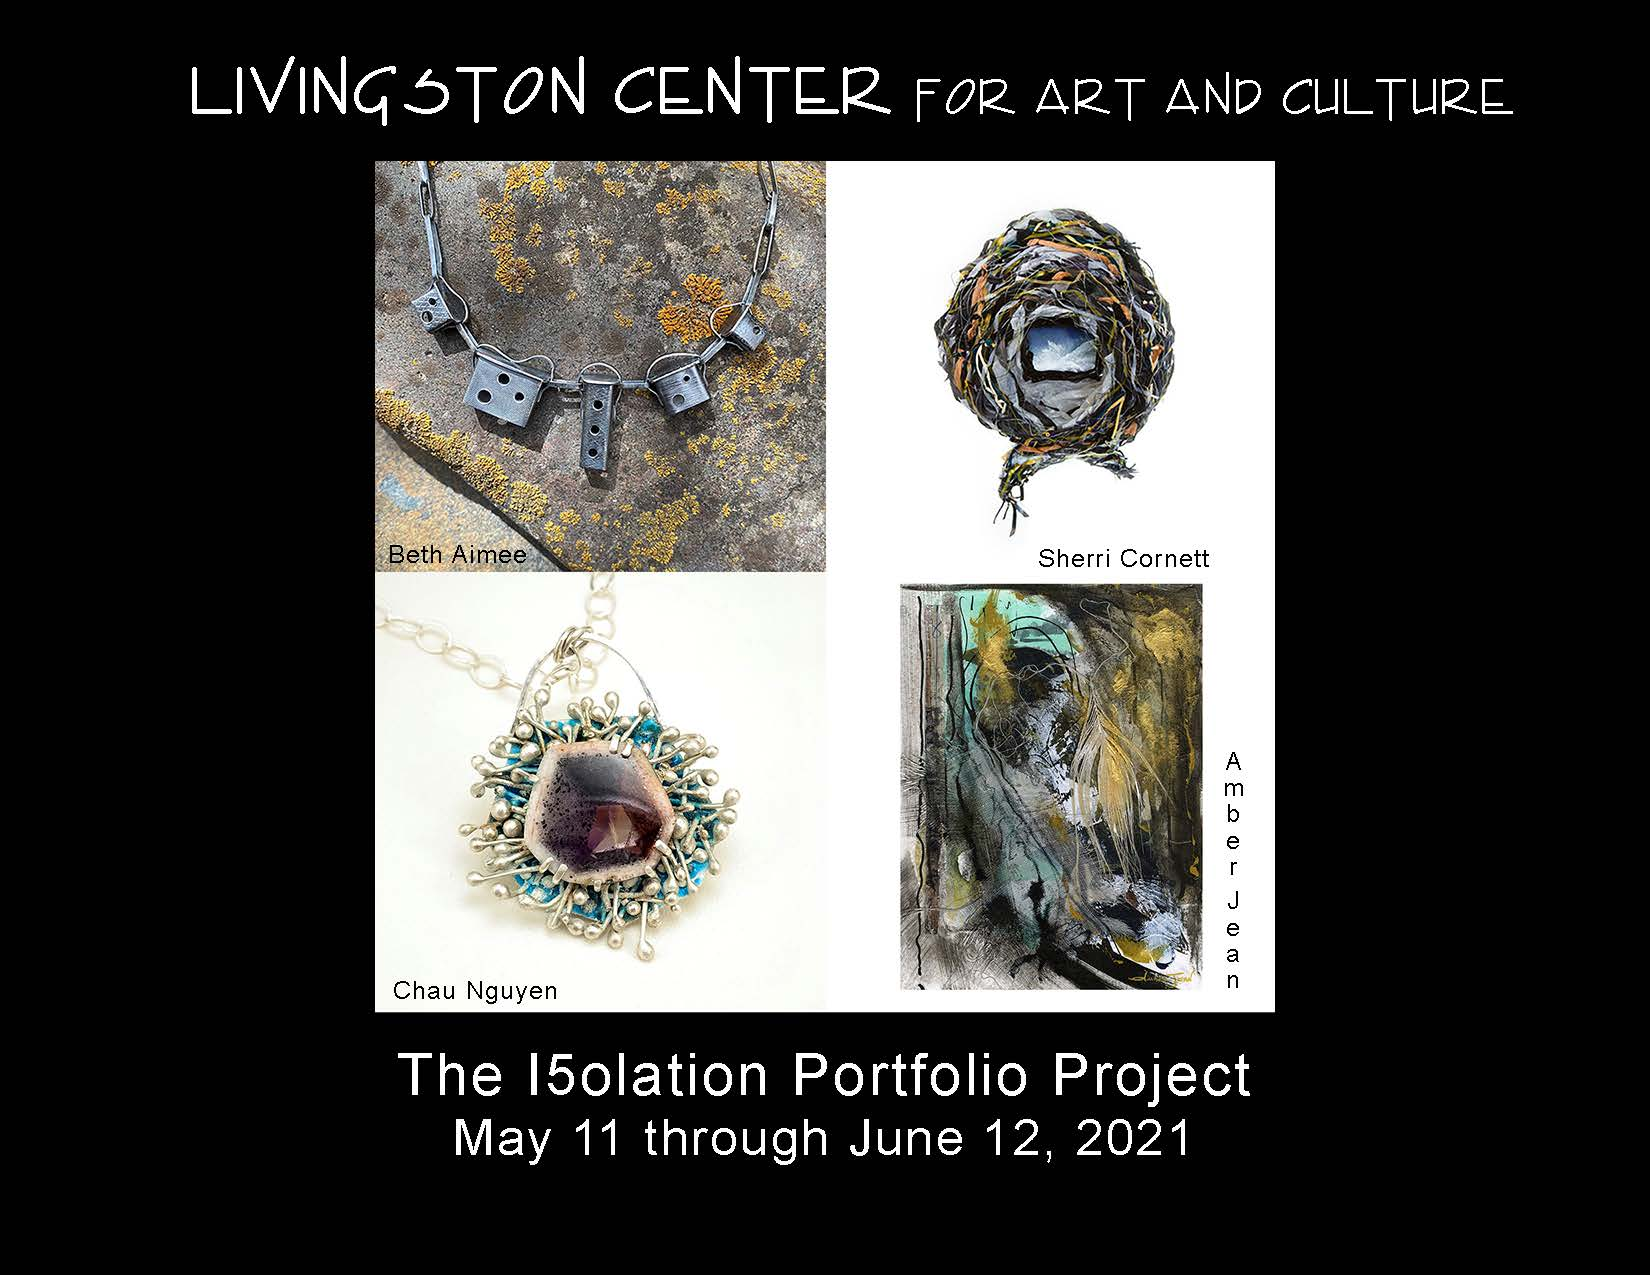 Livingston Center for Art and Culture